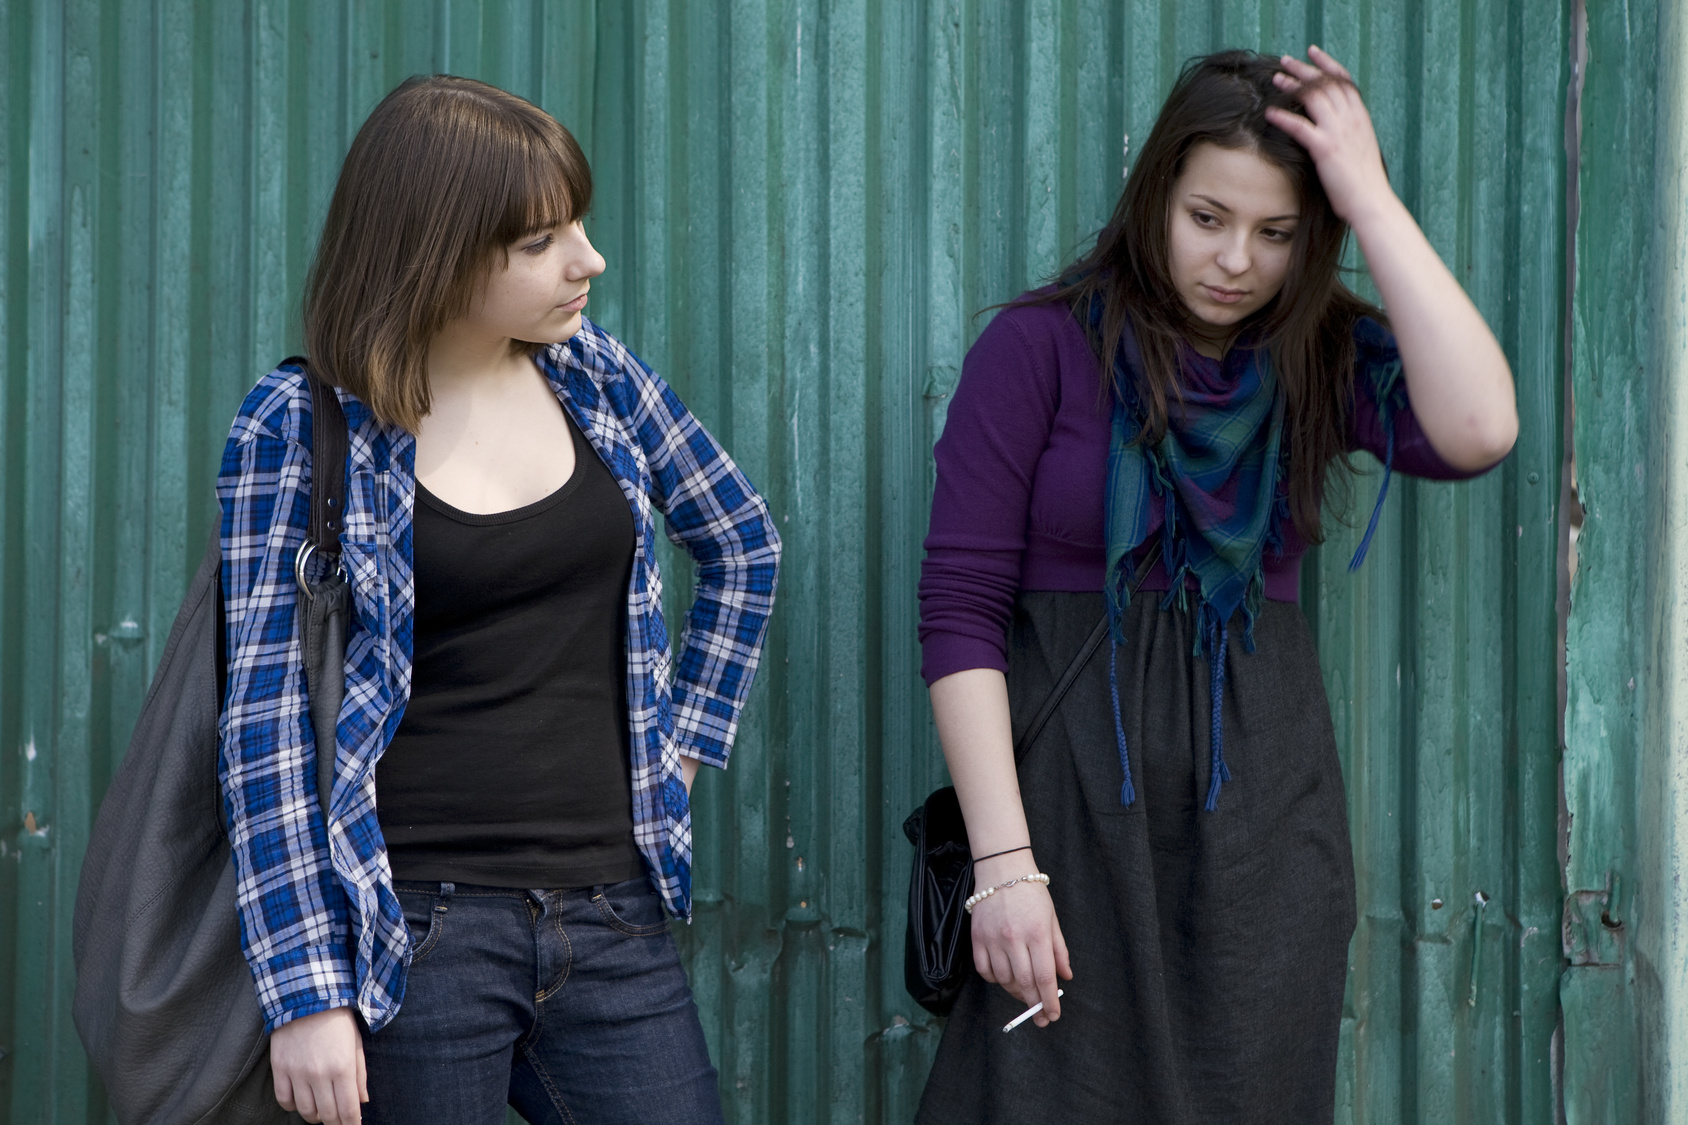 Youth Counselling Services Basingstoke